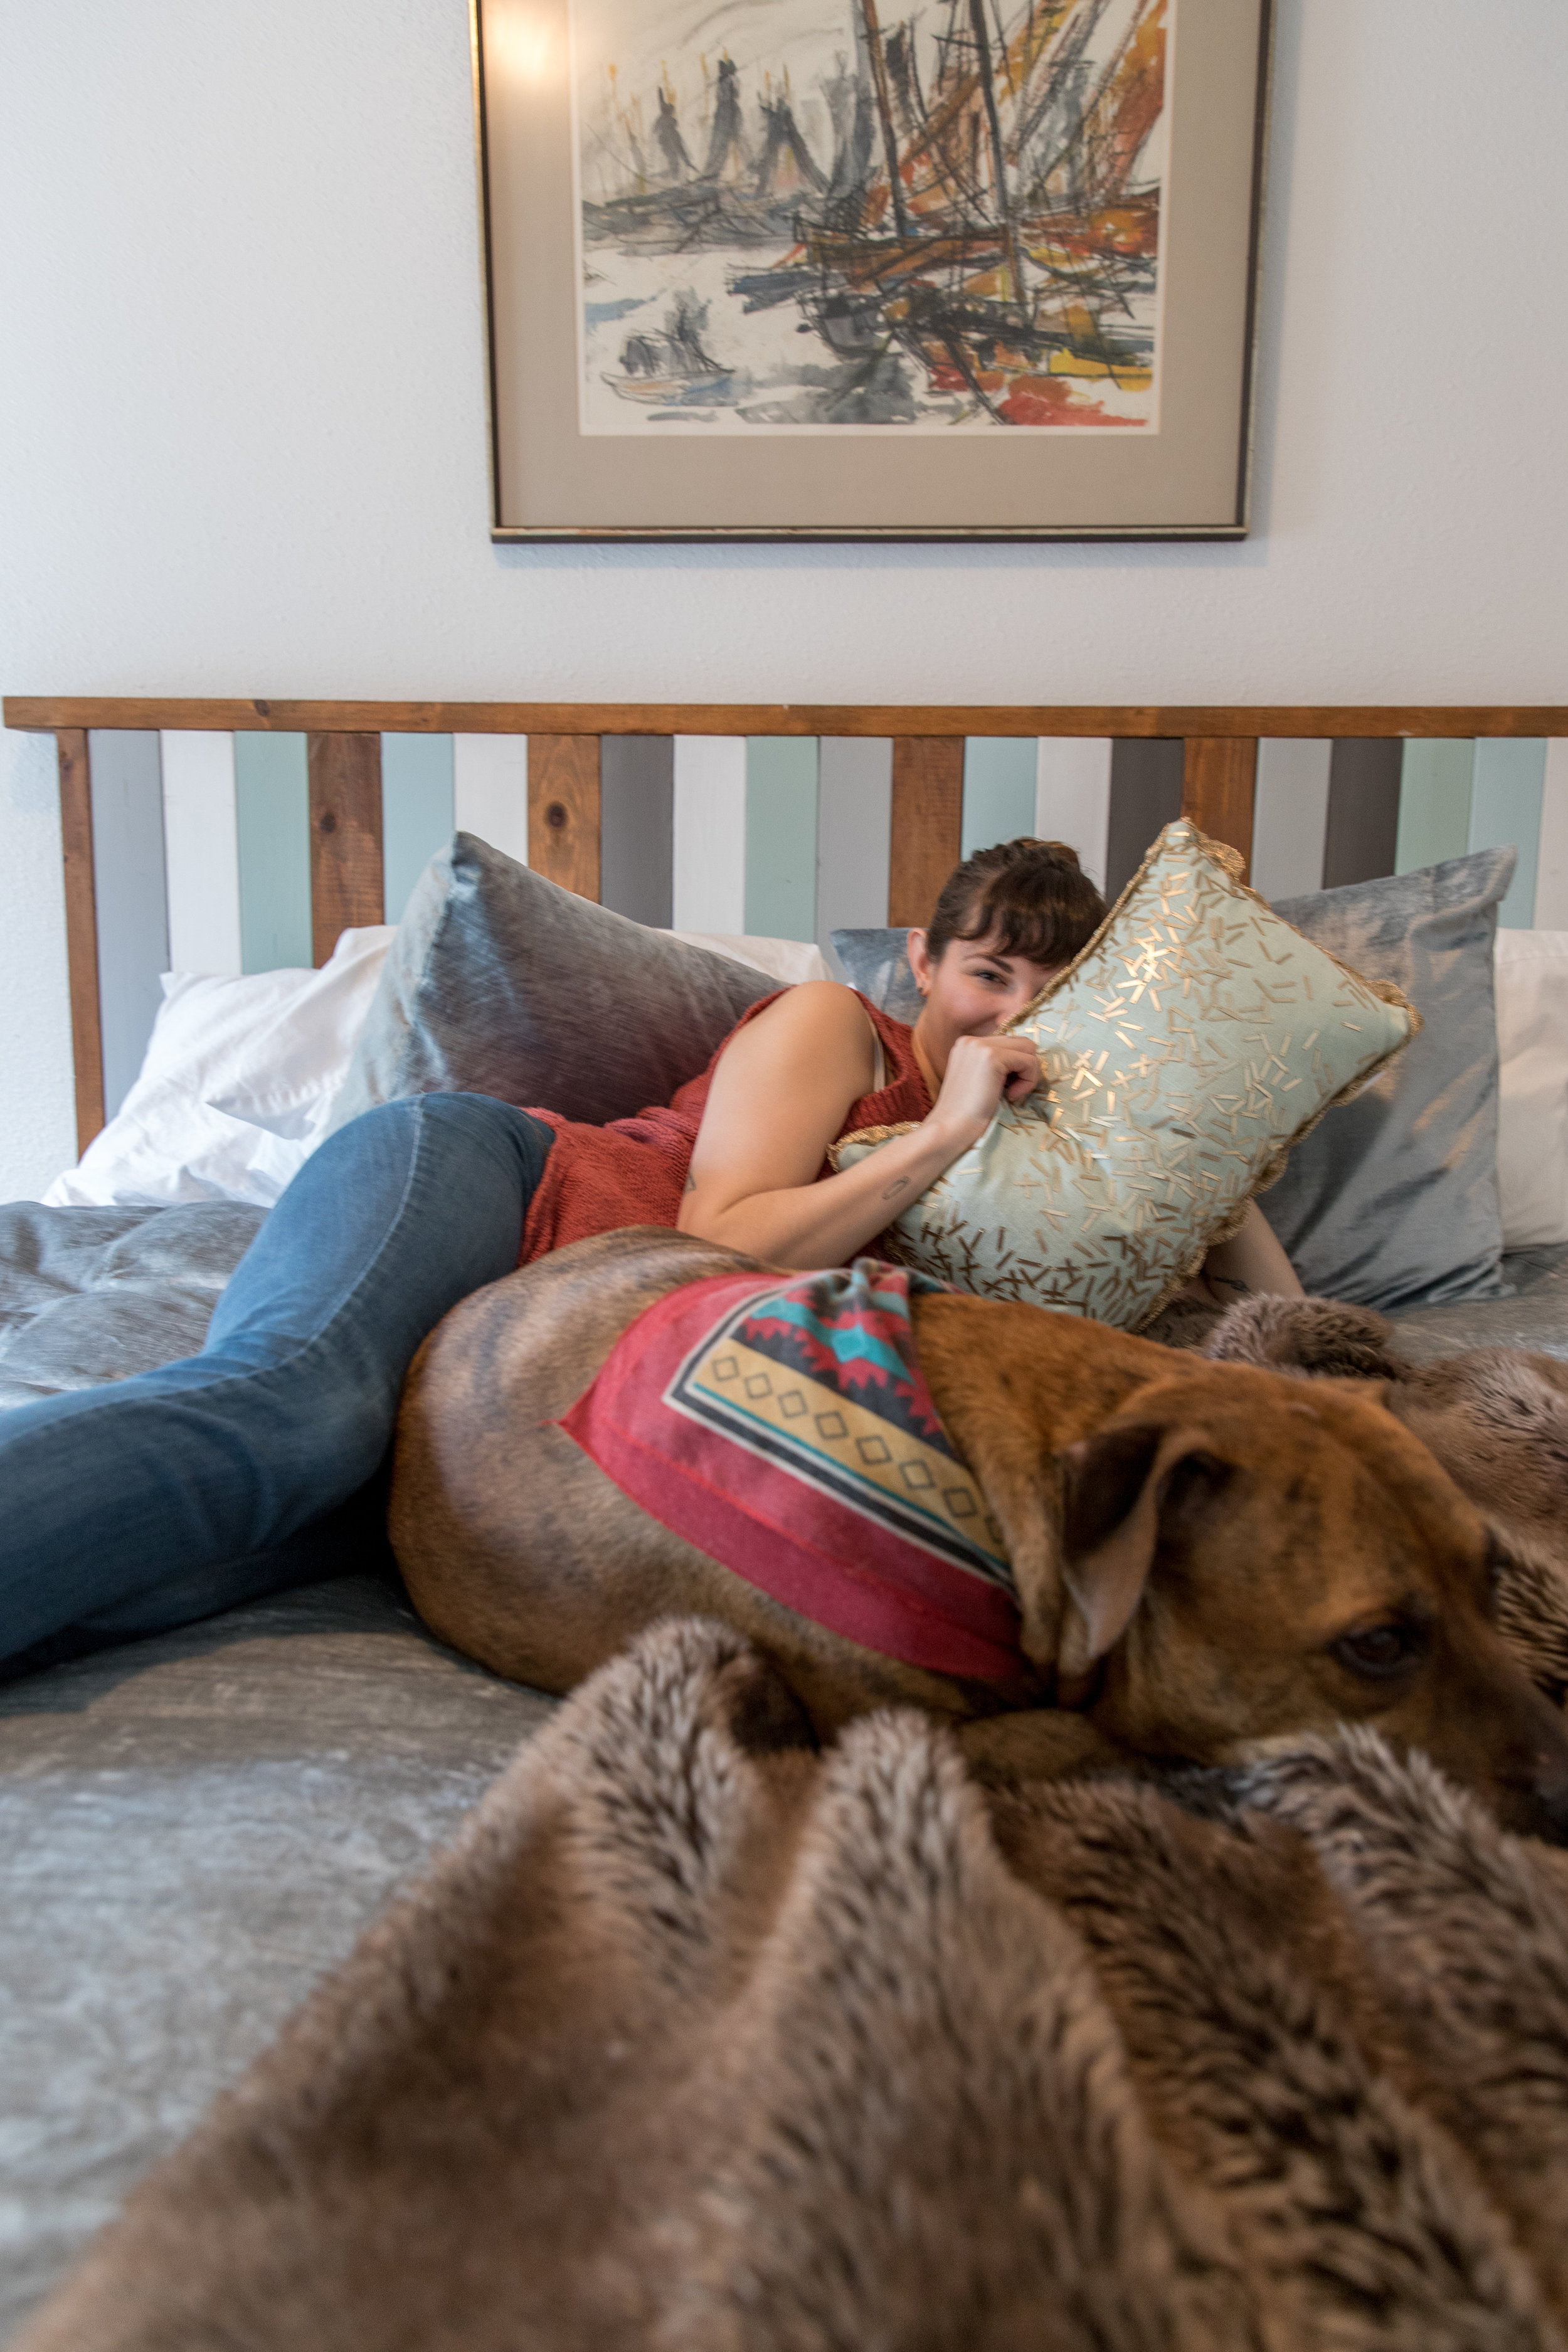 Key Tips for a Cozy Bed